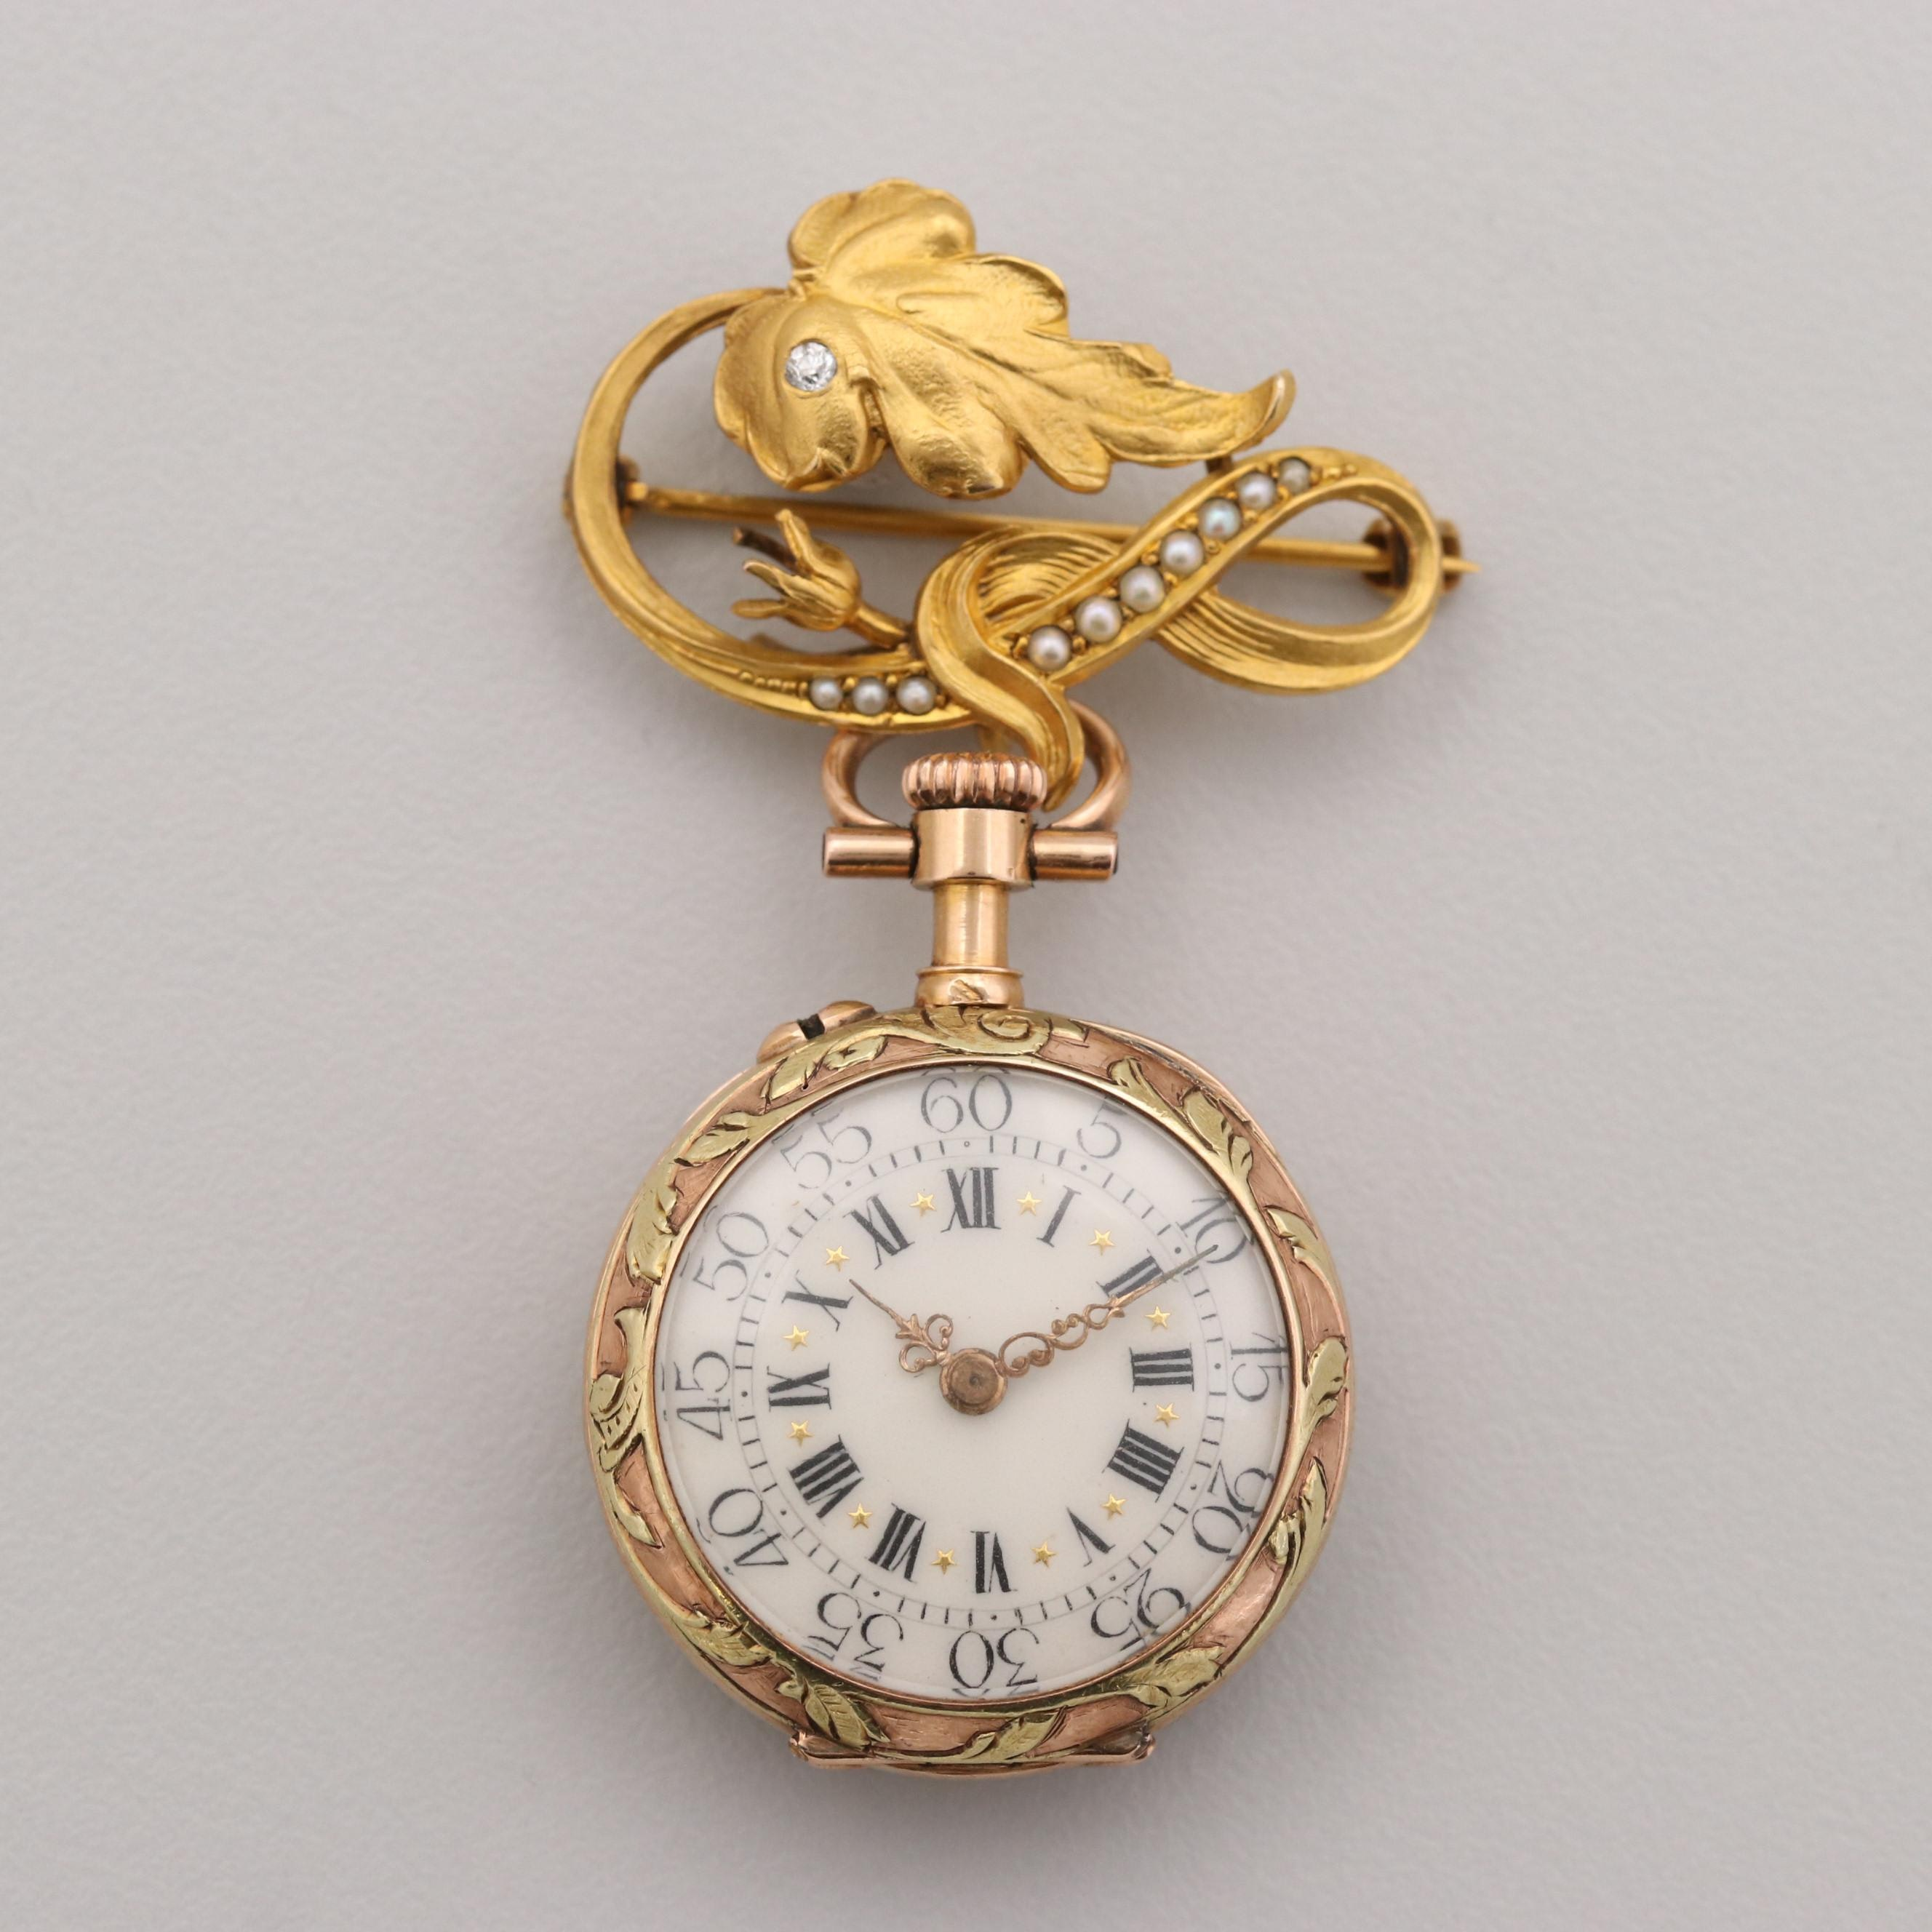 18K Gold Open Face Pocket Watch On Diamond and Pearl Brooch, Circa 1838 -1847